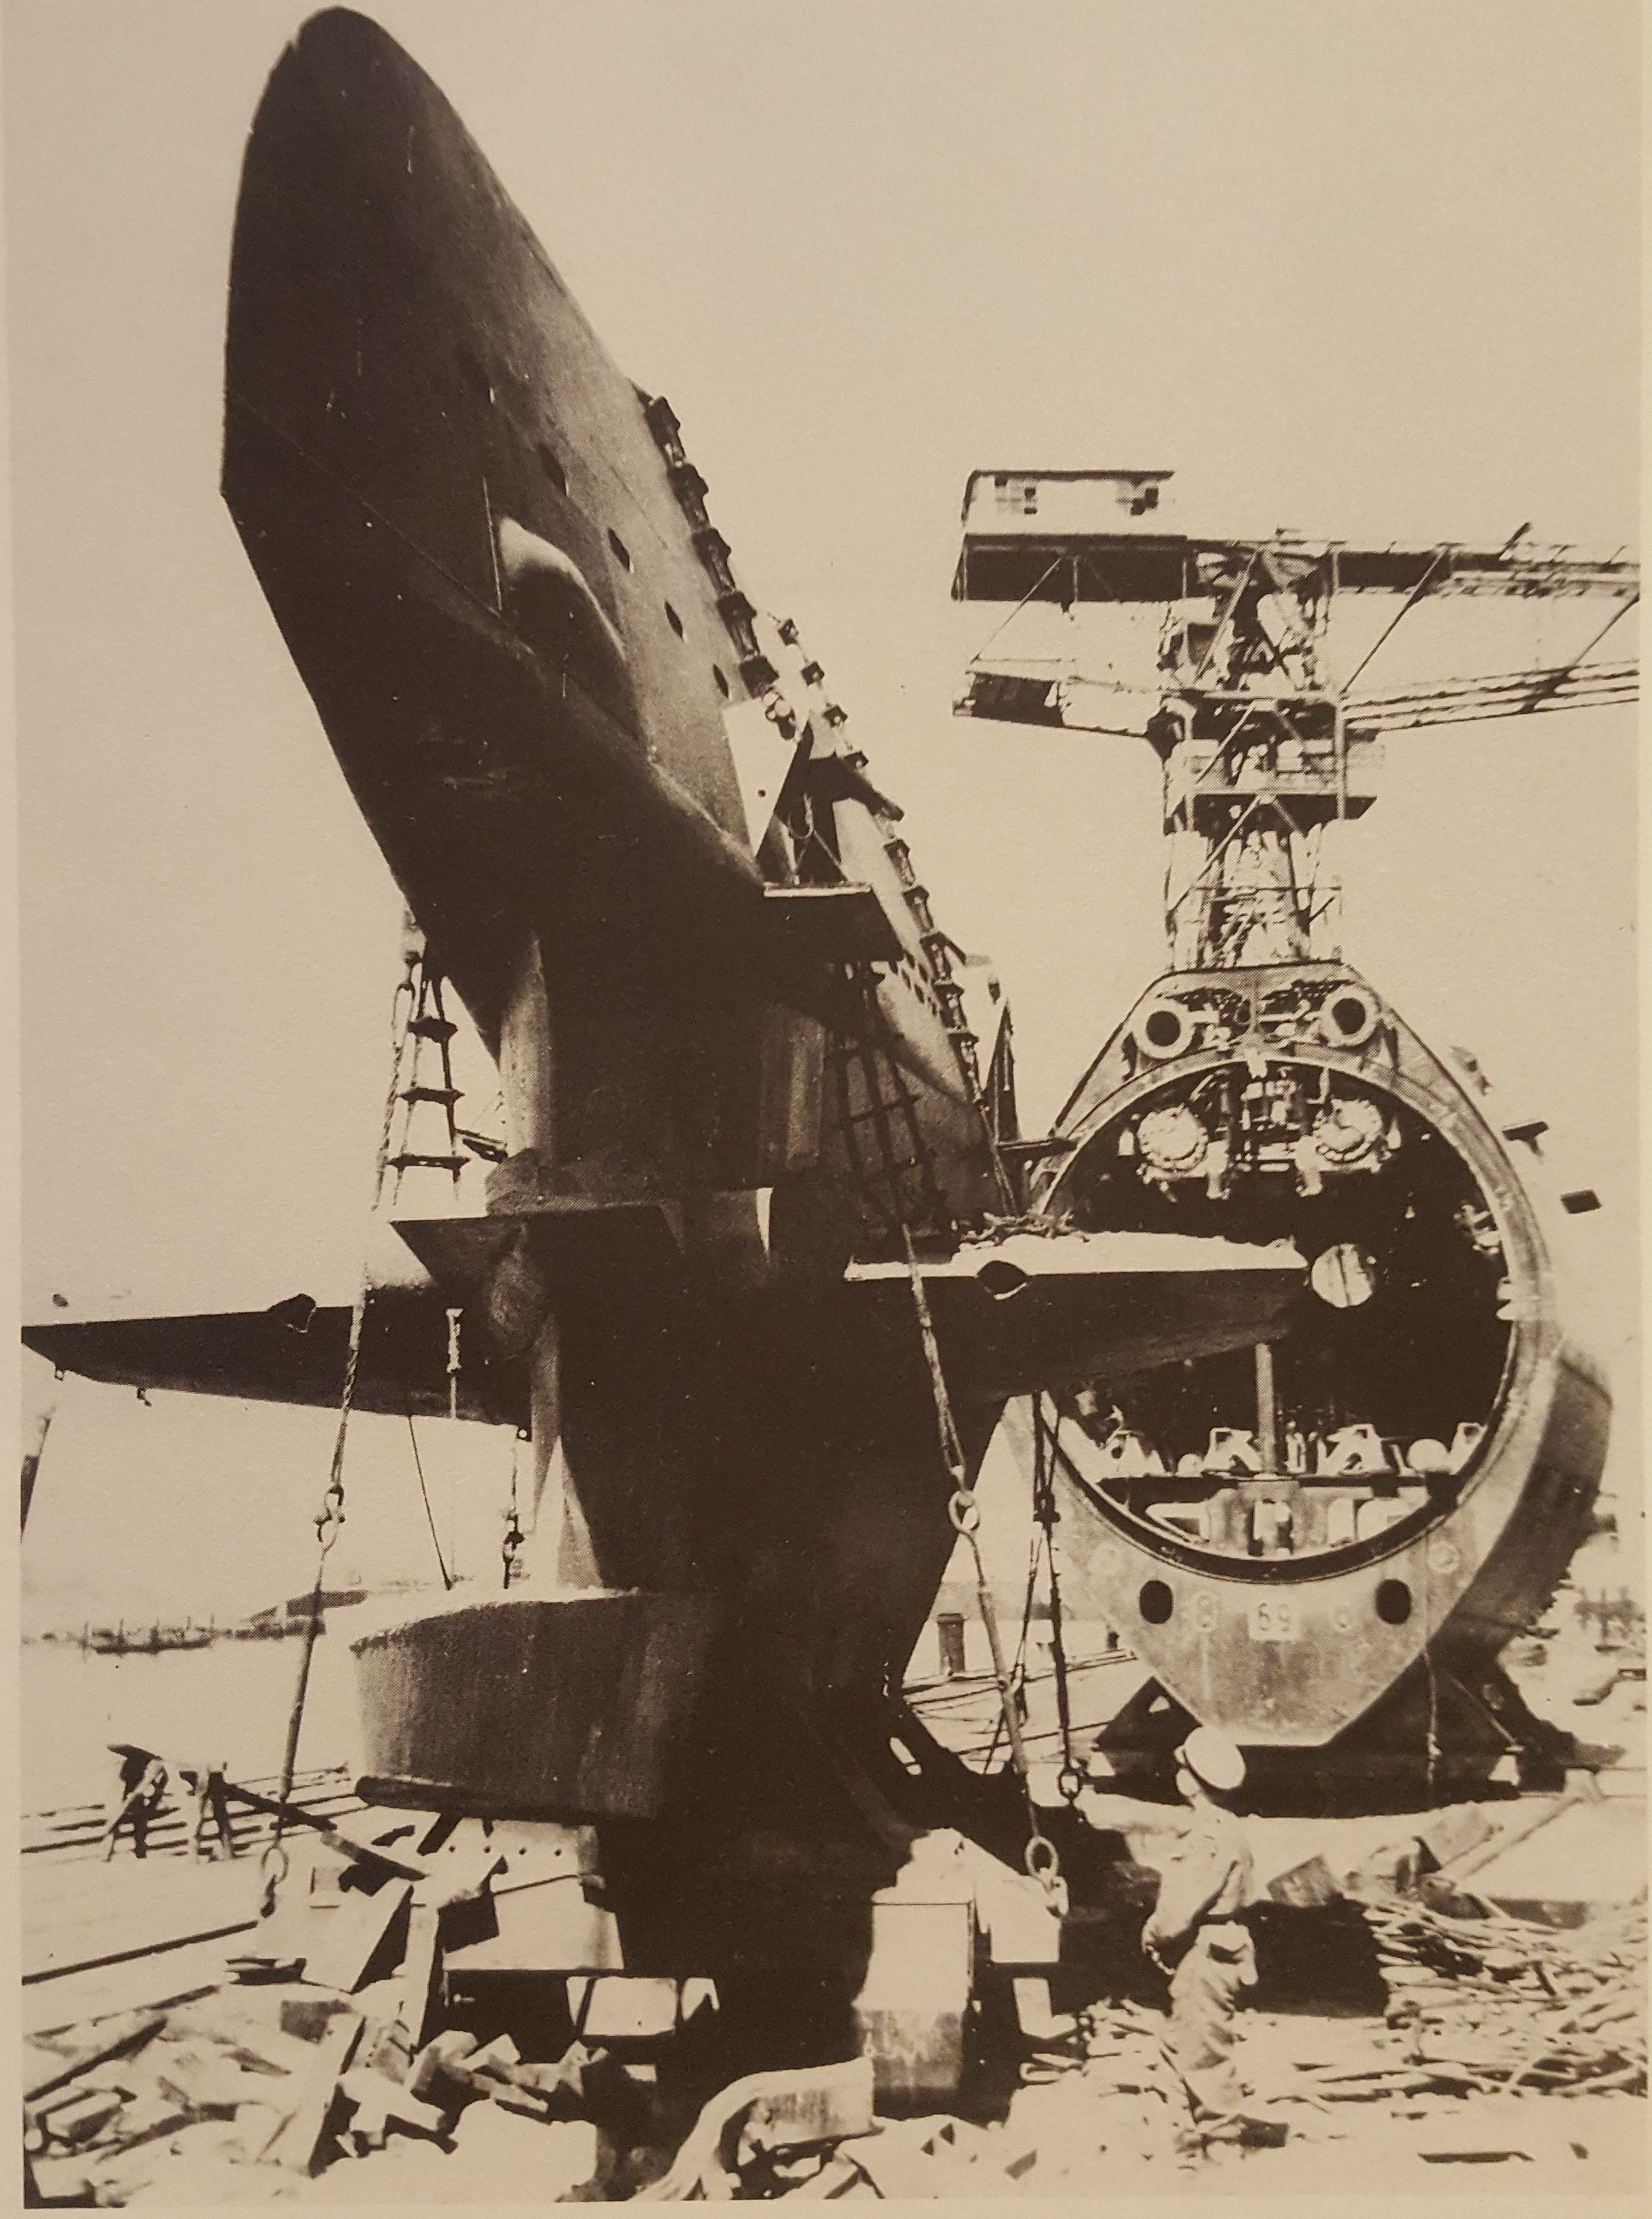 Aircraft Carrier Engine Room: Section 1 Of A Type XXI U-boat With The Rudder Not Yet In